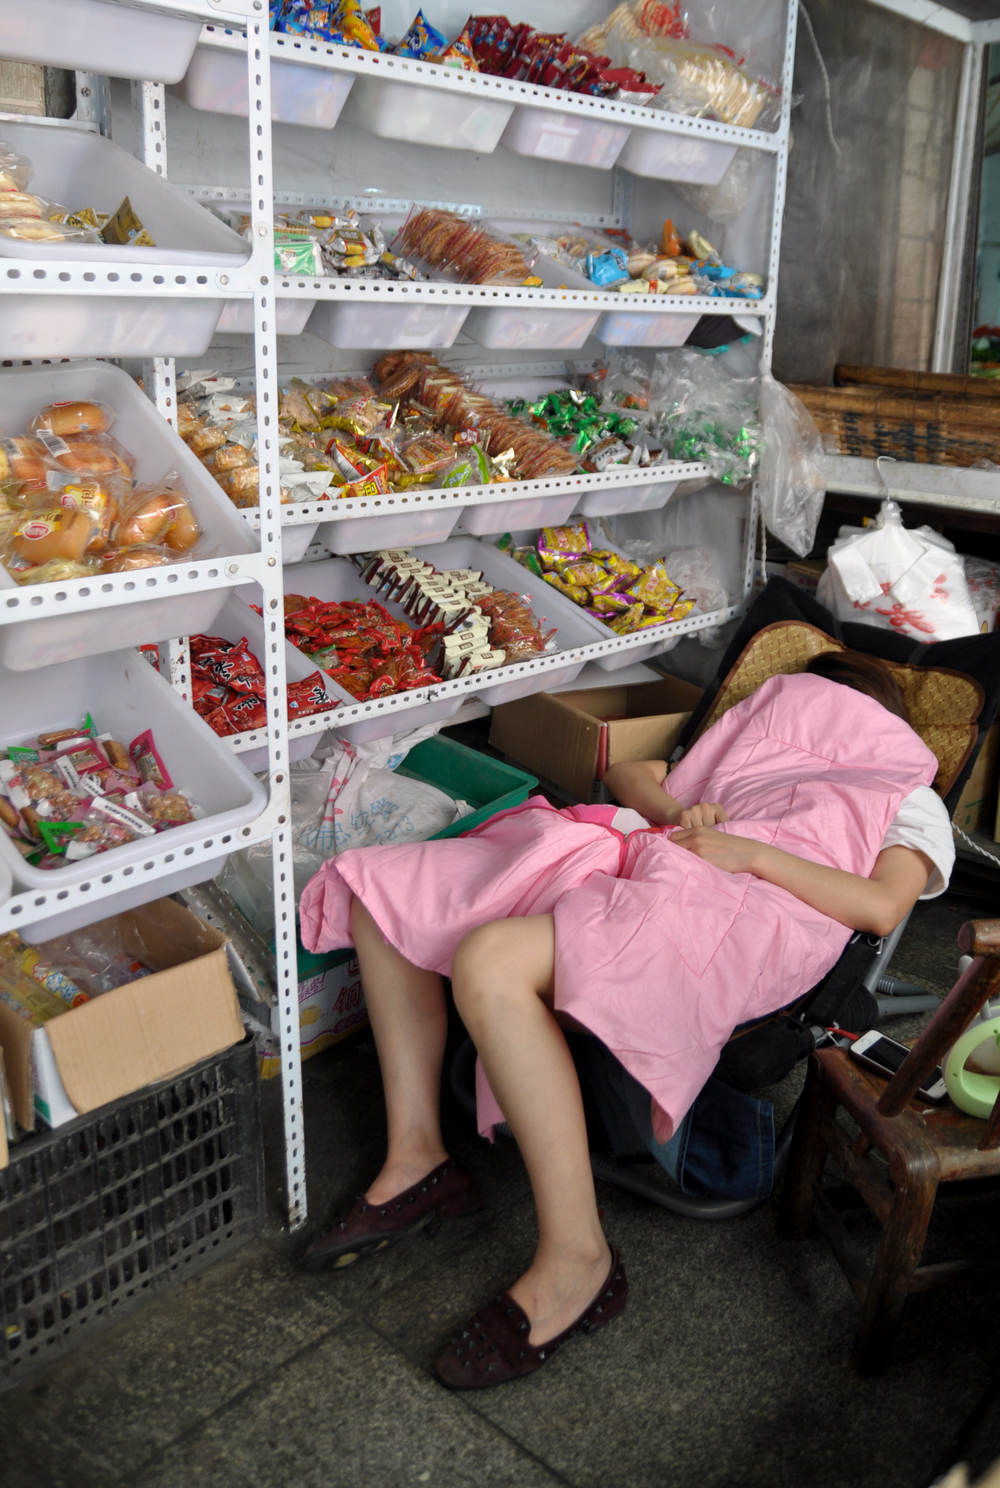 VENDOR SLEEPING2.jpg